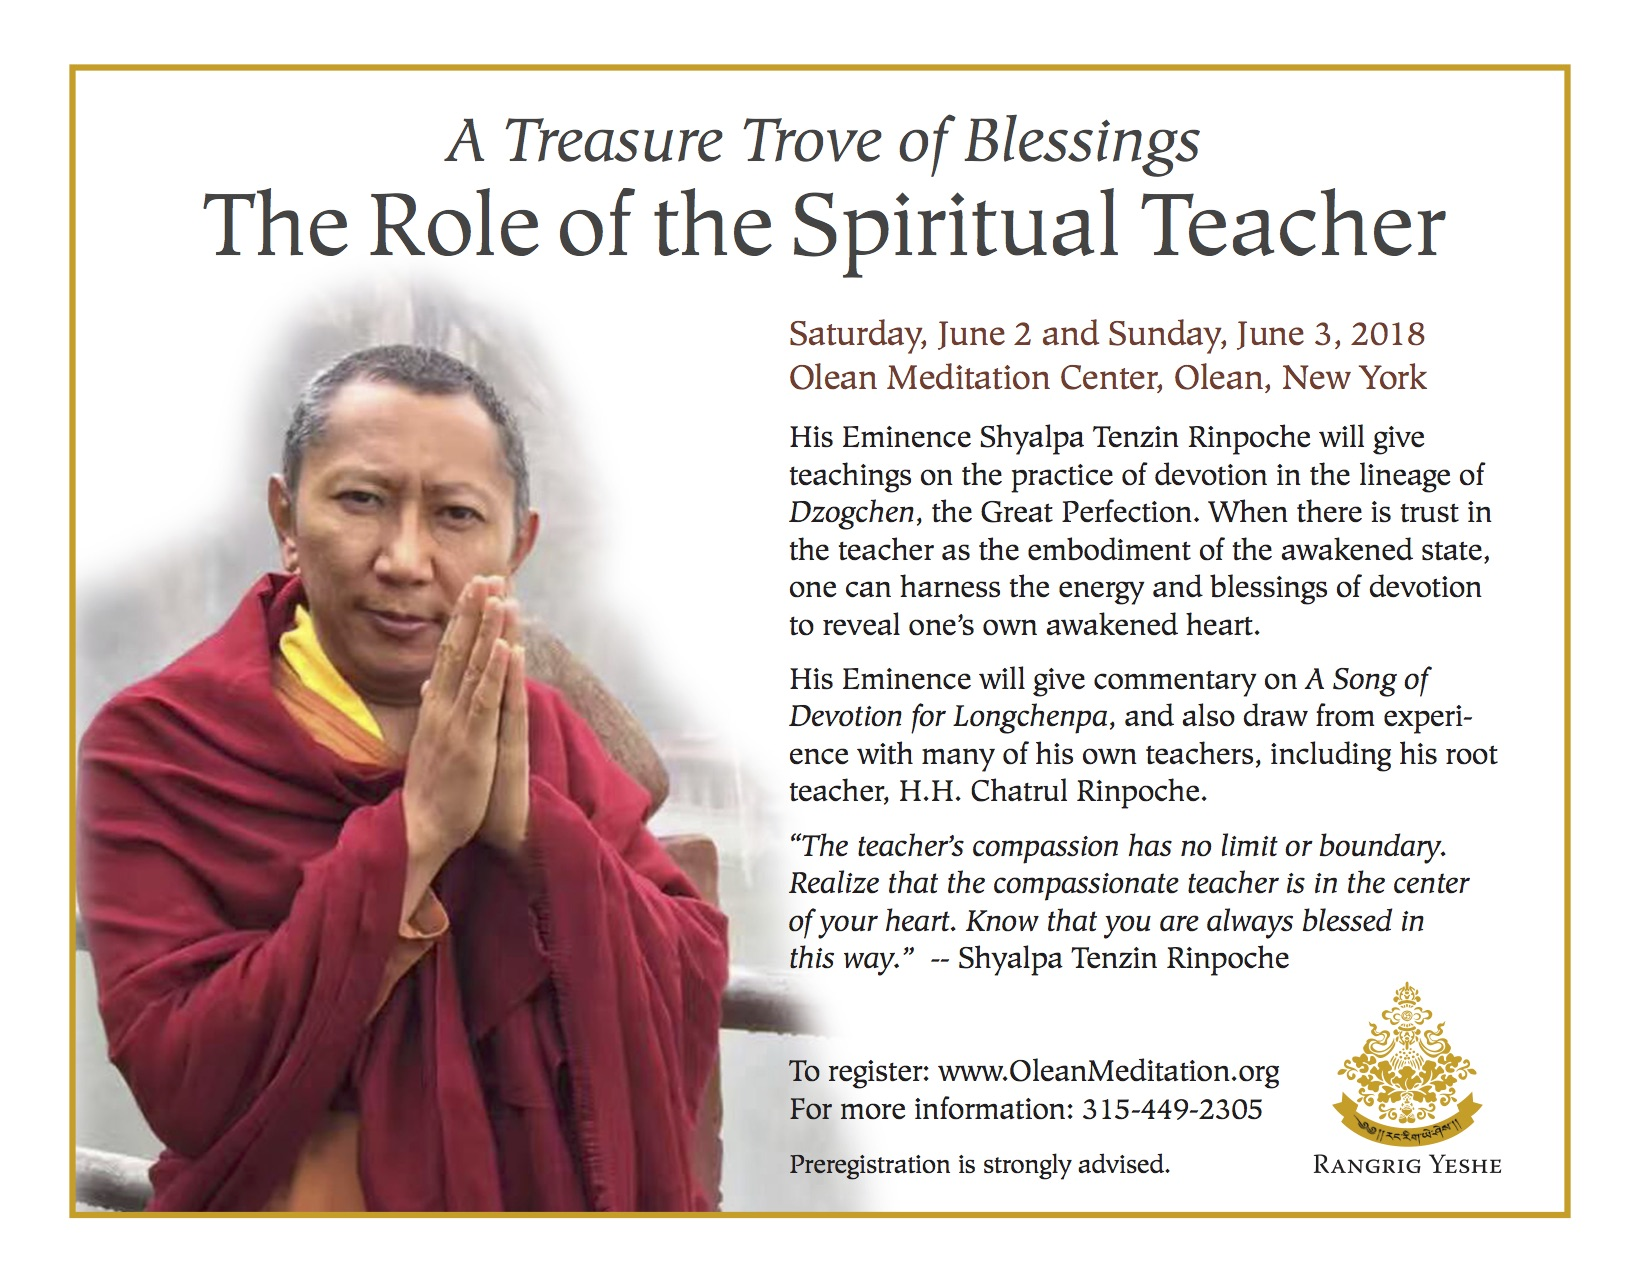 The Role of the Spiritual Teacher retreat ad